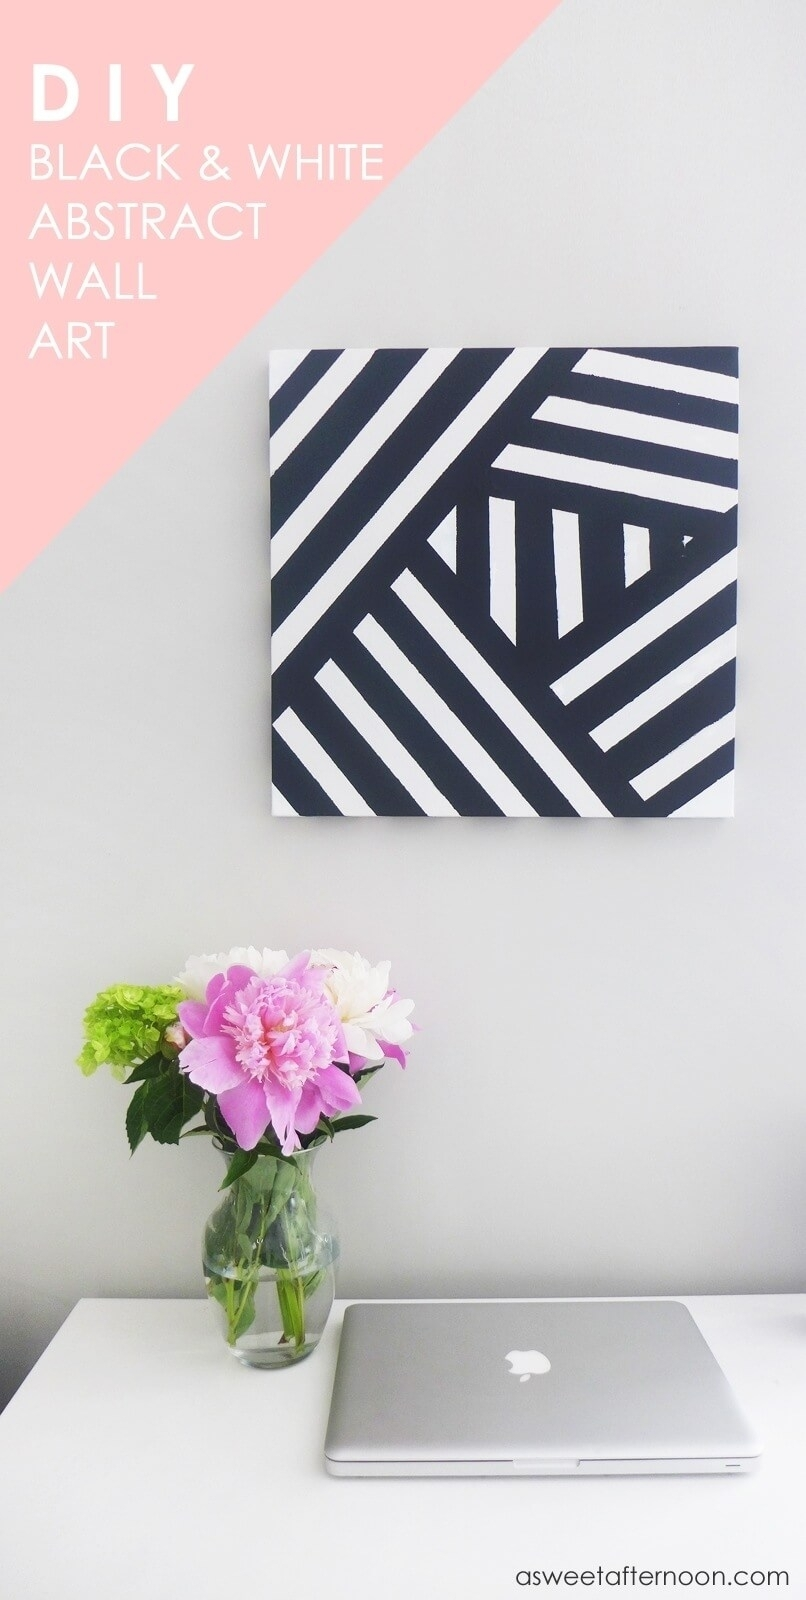 36 Best Diy Wall Art Ideas (Designs And Decorations) For 2018 with Most Recent Diy Wall Art